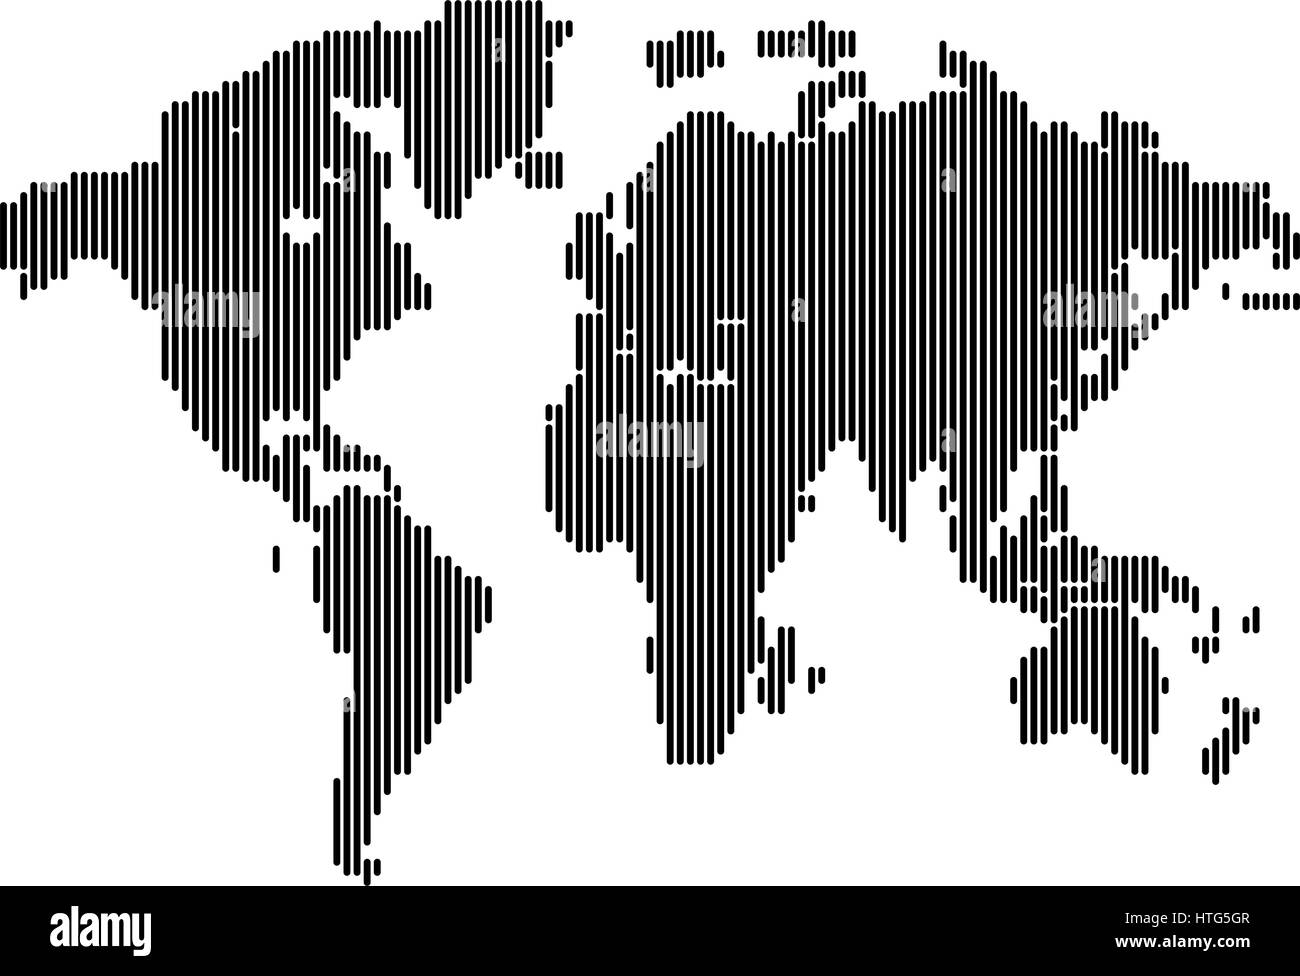 Isolated dark grey color worldmap of lines on white background isolated dark grey color worldmap of lines on white background earth vector illustration gumiabroncs Choice Image